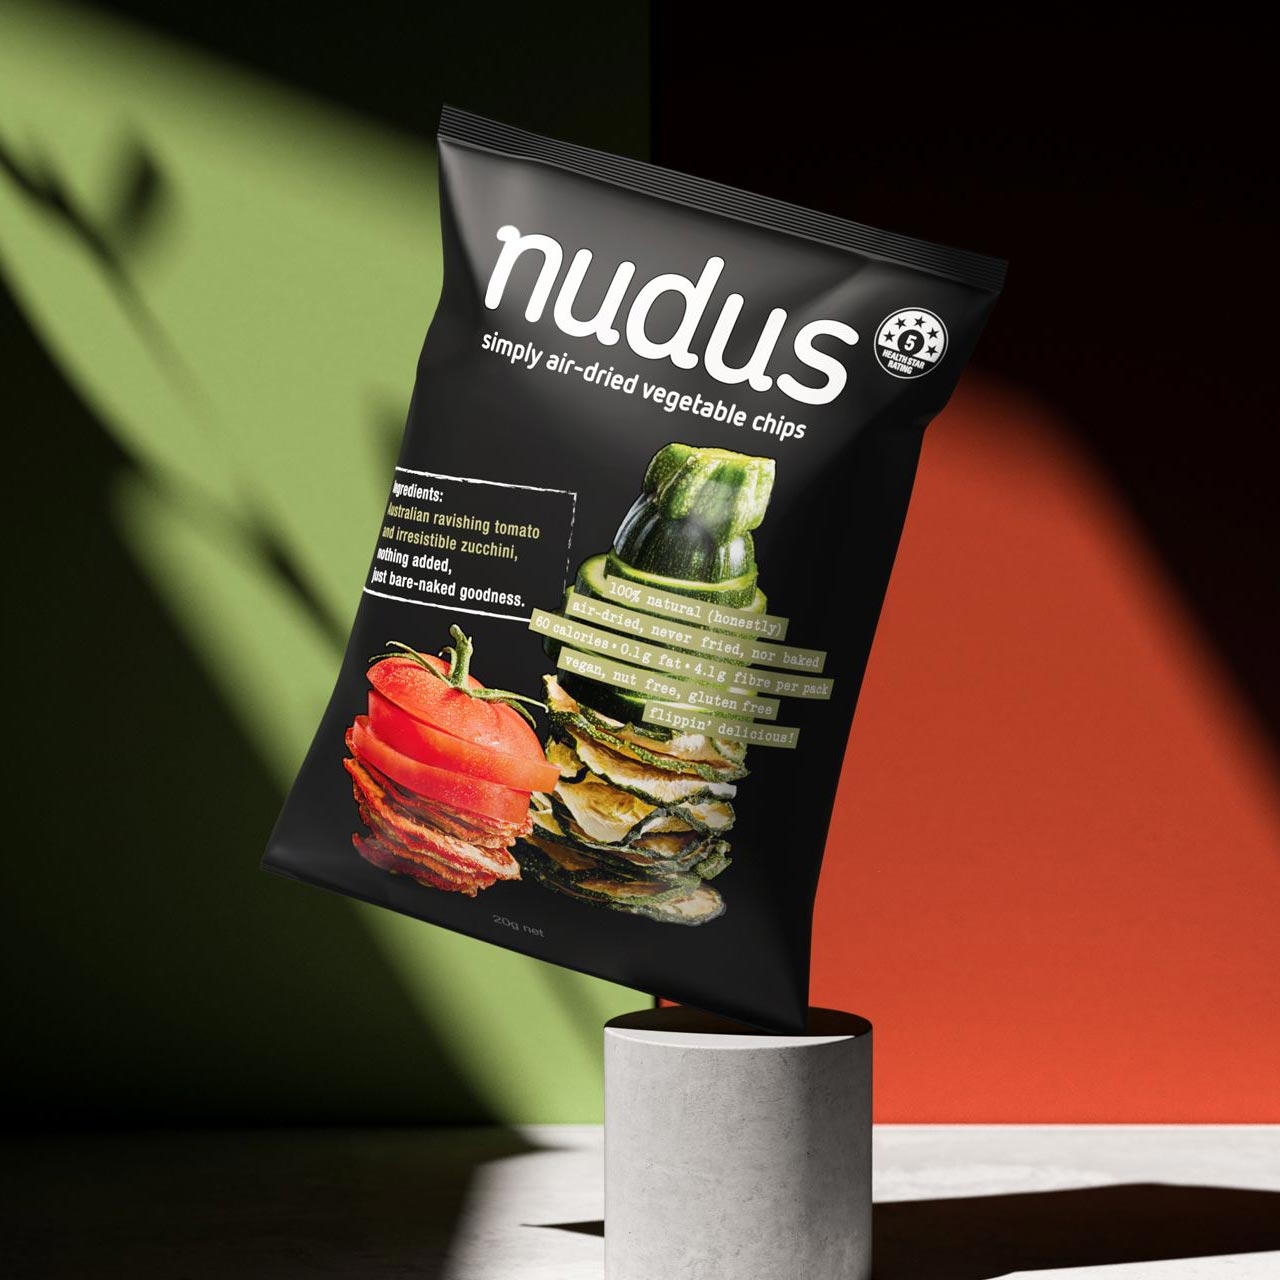 Nudus Branding Snack Packaging